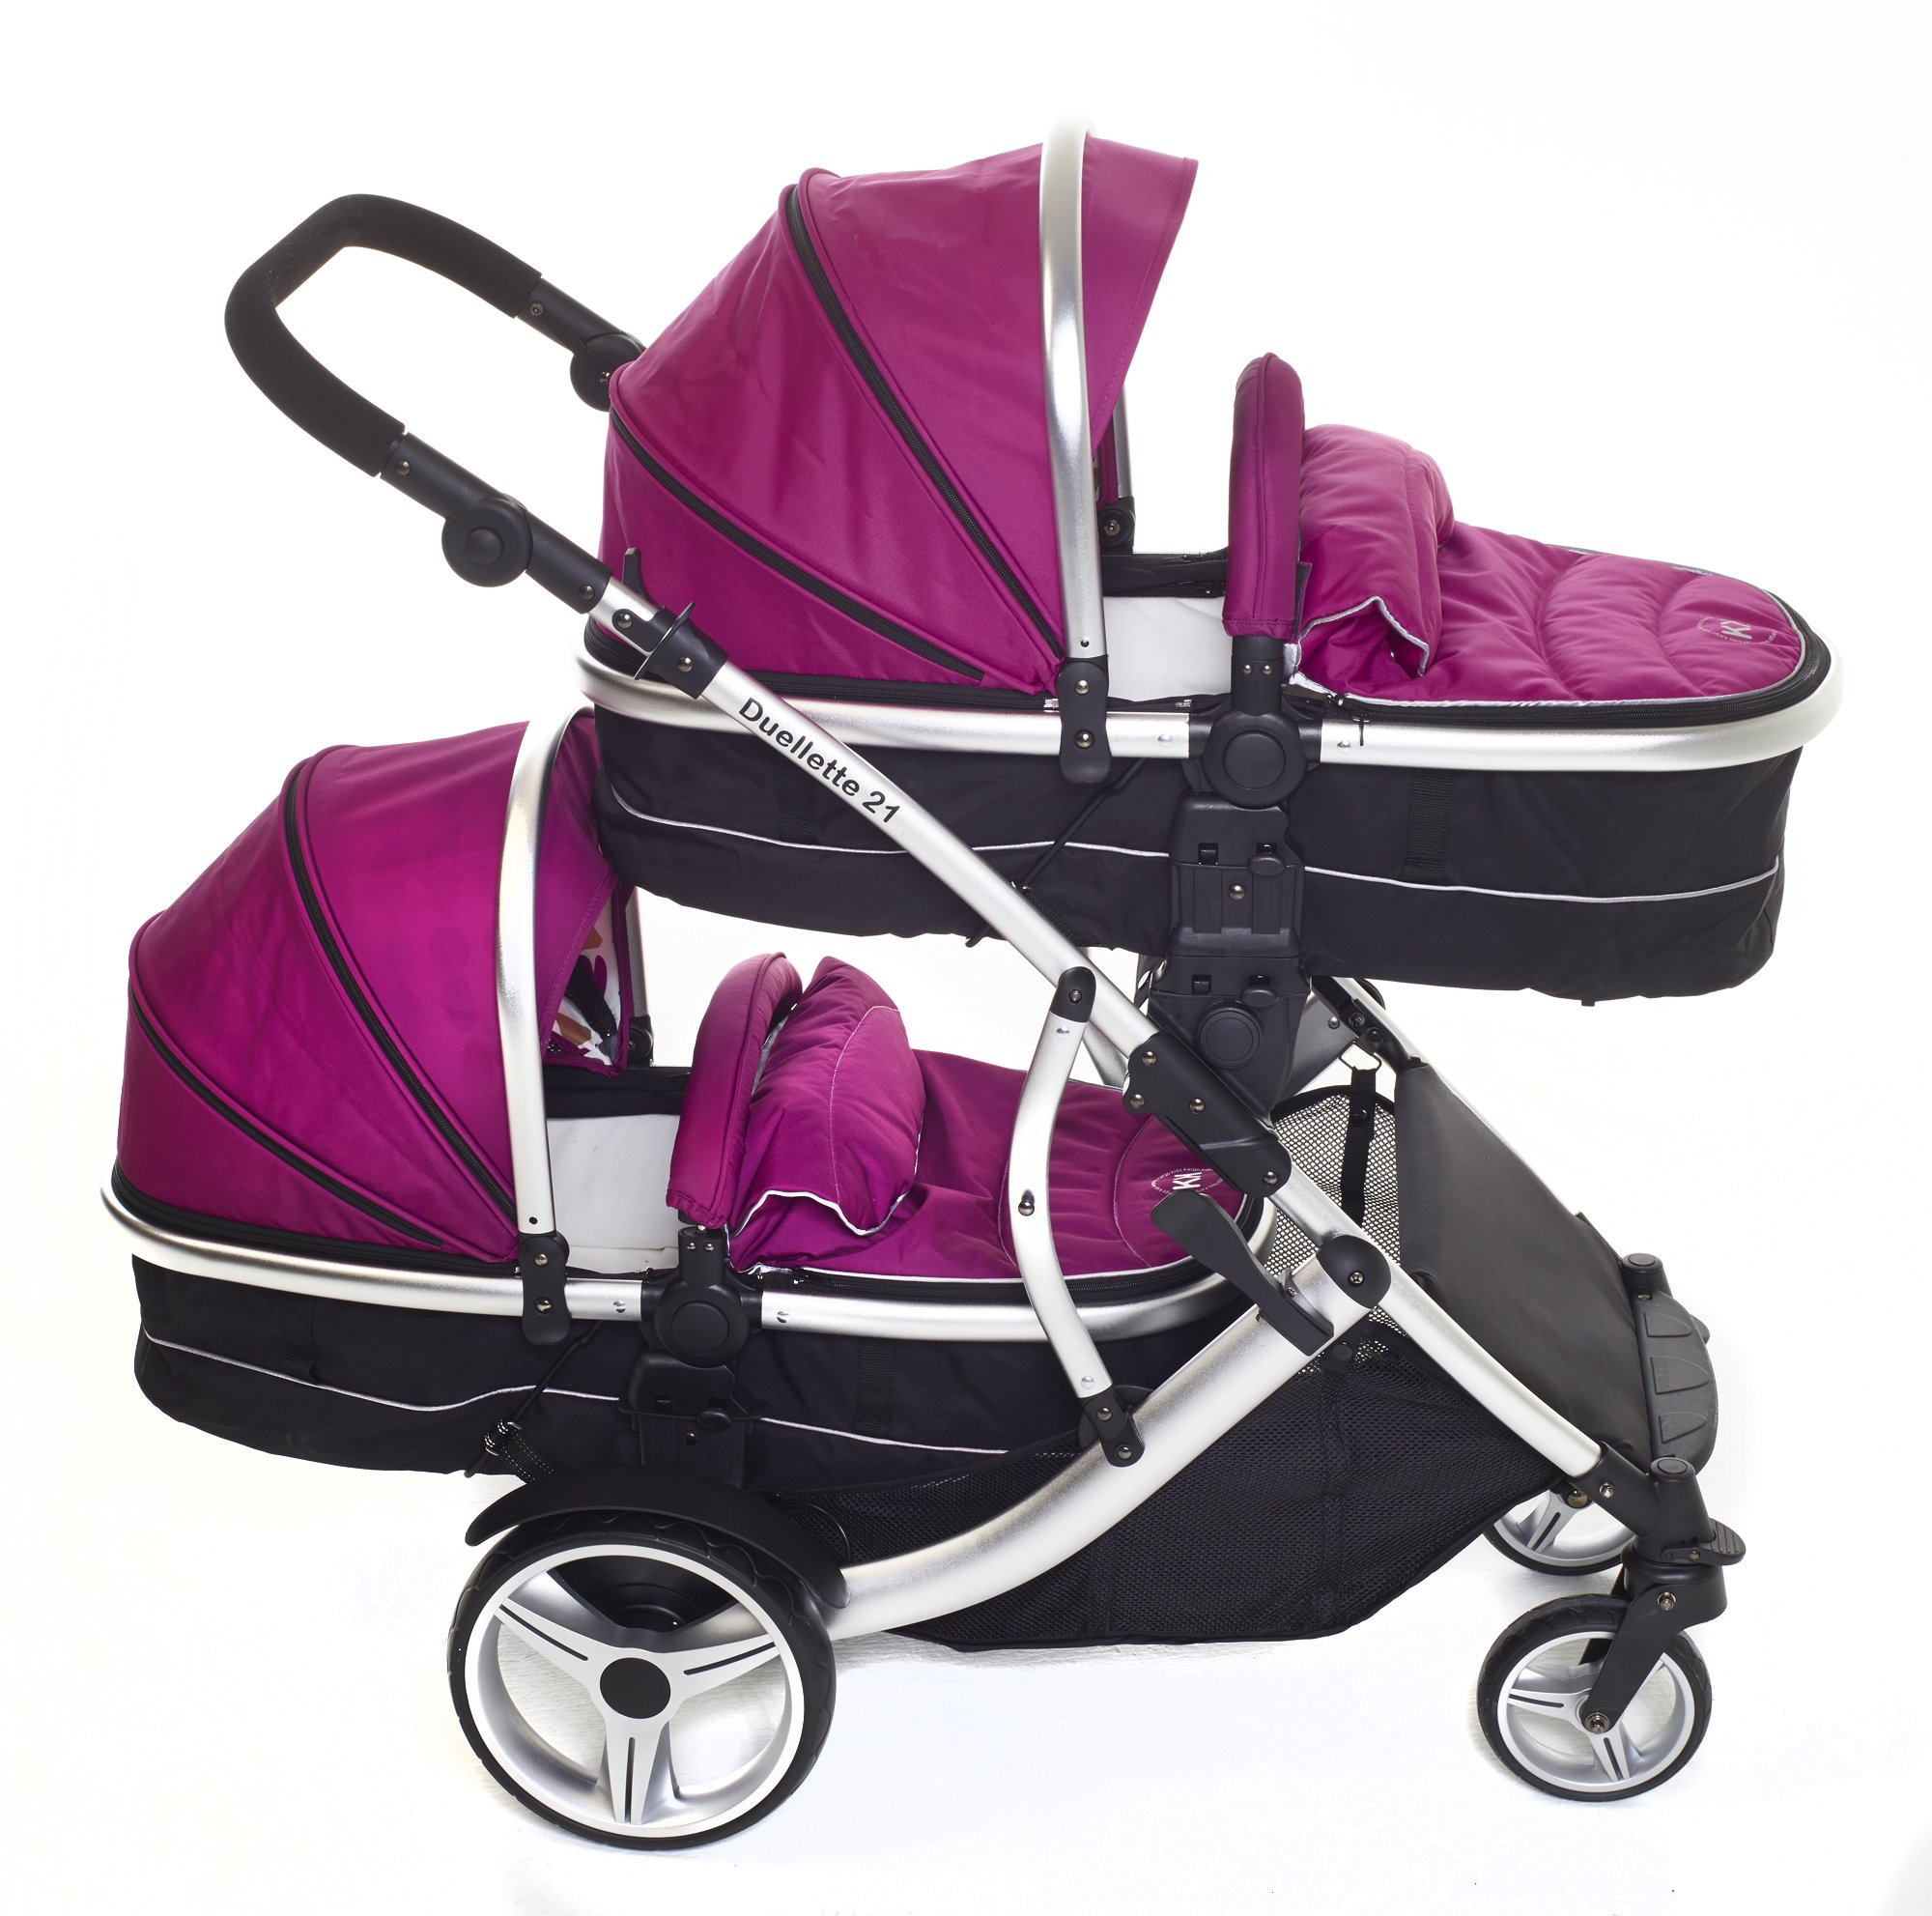 Kids Kargo Double Twin Tandem Pushchair. Duellette Combi Suitable from birth, Carrycot converts to toddler seat unit. Stroller by Kids Kargo (Dooglebug Raspberry)  Versatile. Suitable for Newborn Twins Compatible with car seats; Kidz Kargo, Britax Baby safe or Maxi Cosi adaptors. carrycots have mattress and soft lining, which zip off. Remove lining and lid, when baby grows out of carrycot mode, converts to seat unit 2